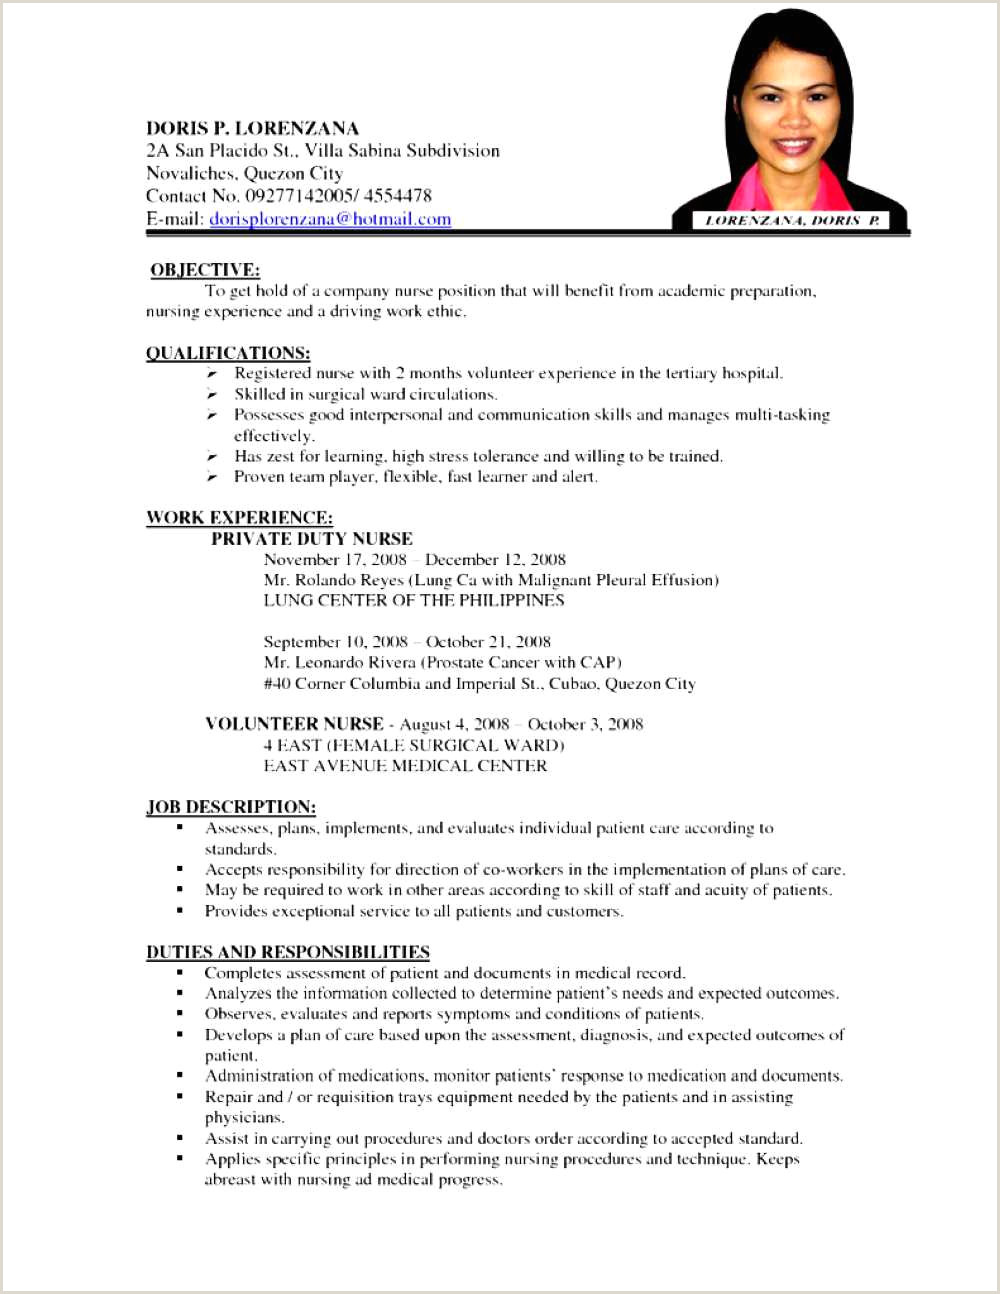 Resume Format For Nursing Job Free Download – Flamingo Spa